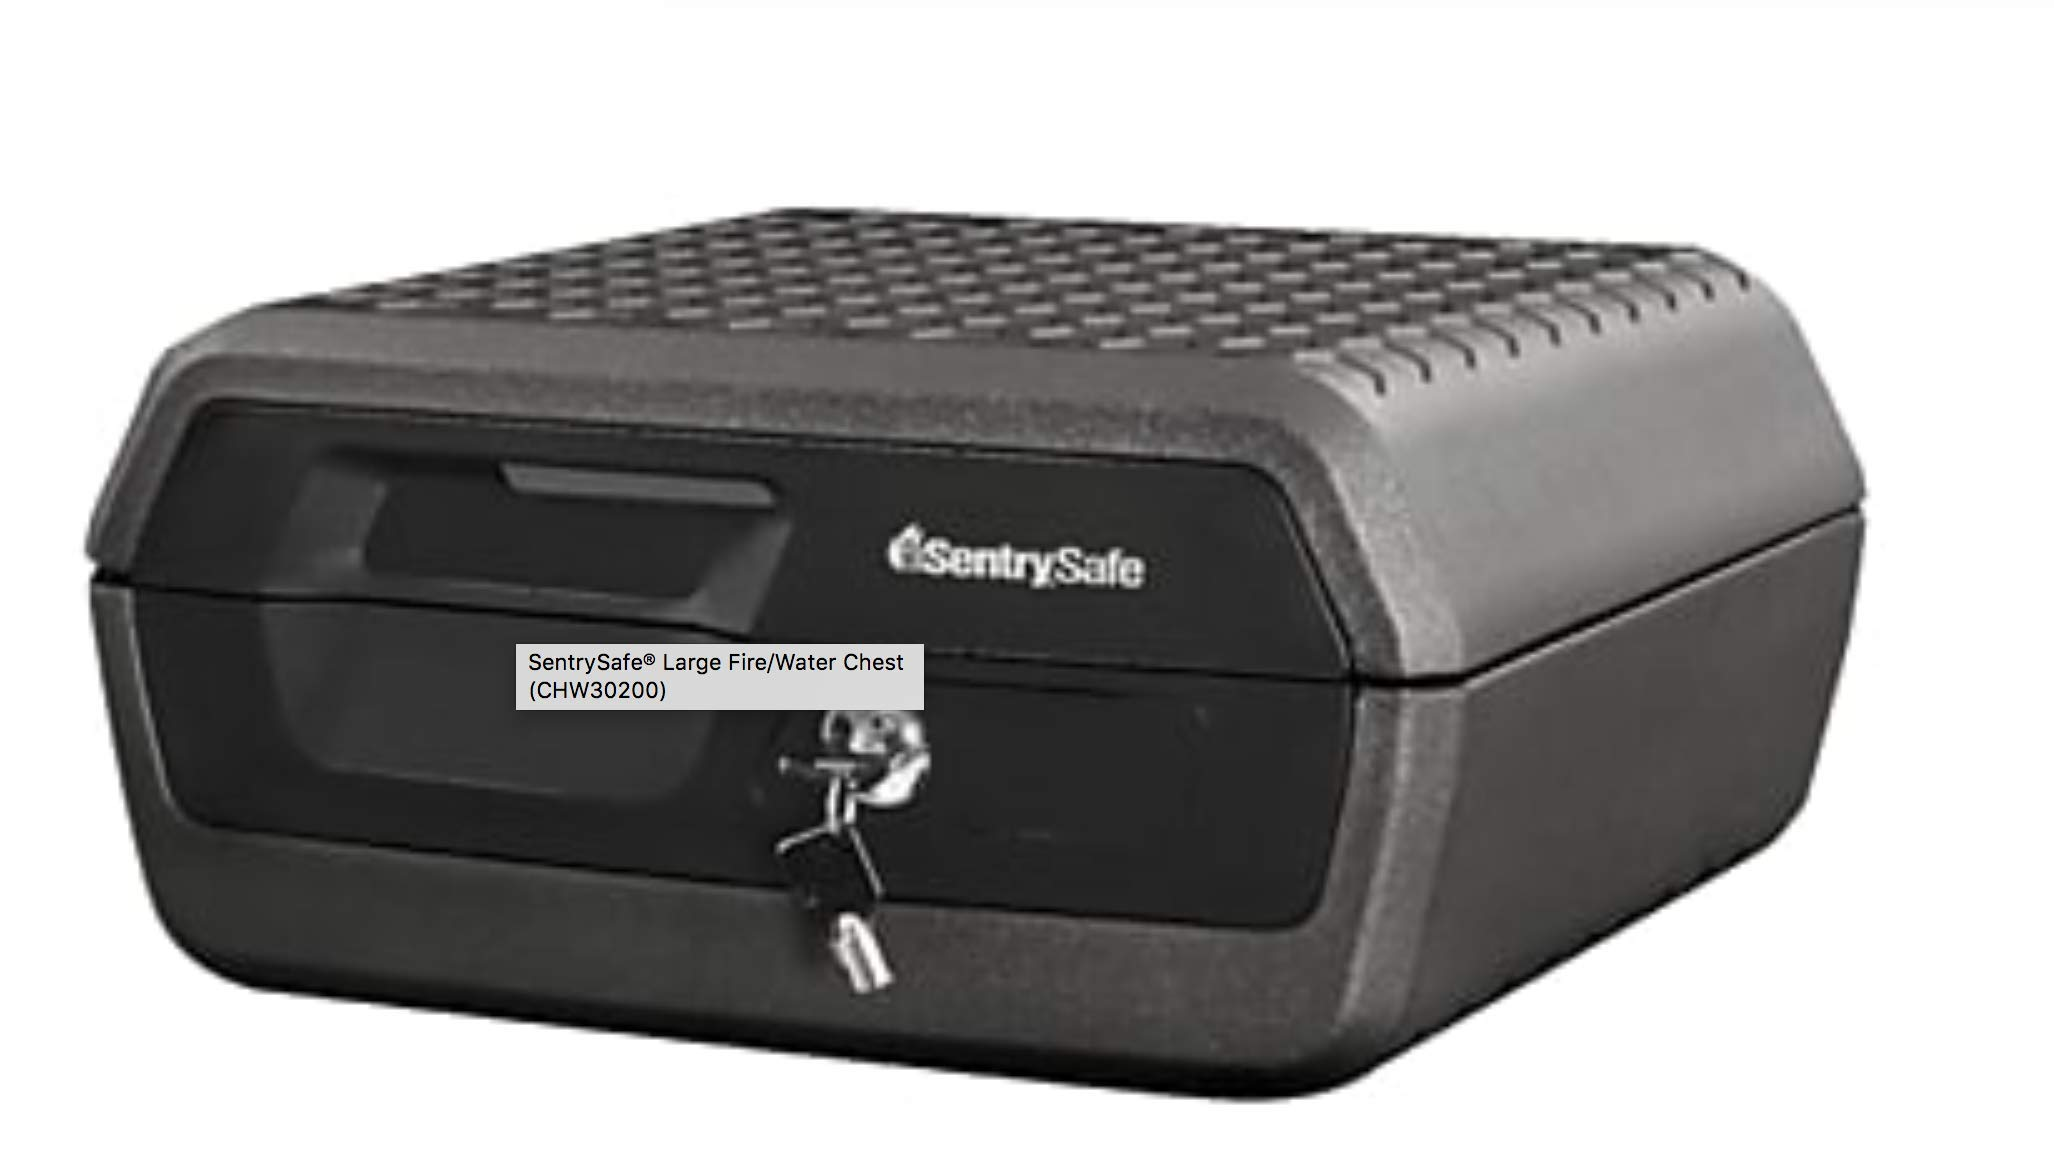 SentrySafe CHW30200 Fire Chests, Safes